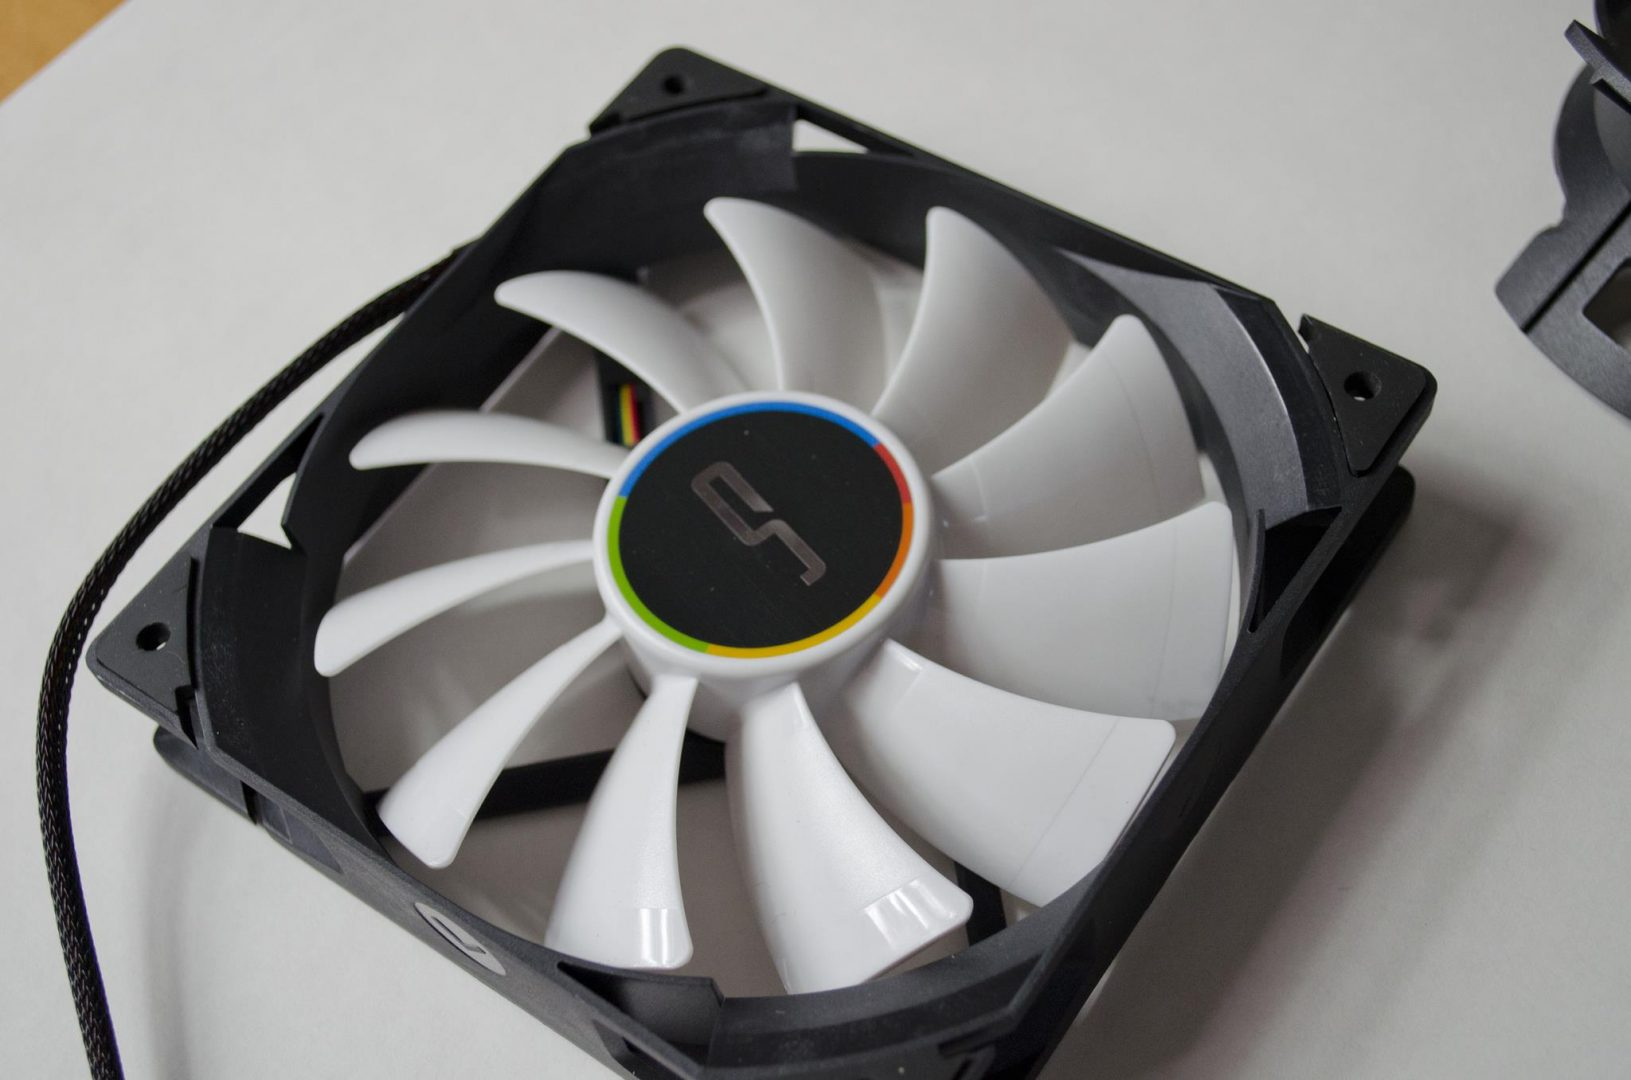 Cryorig a40 2400mm ultimate aio cpu cooler review_1